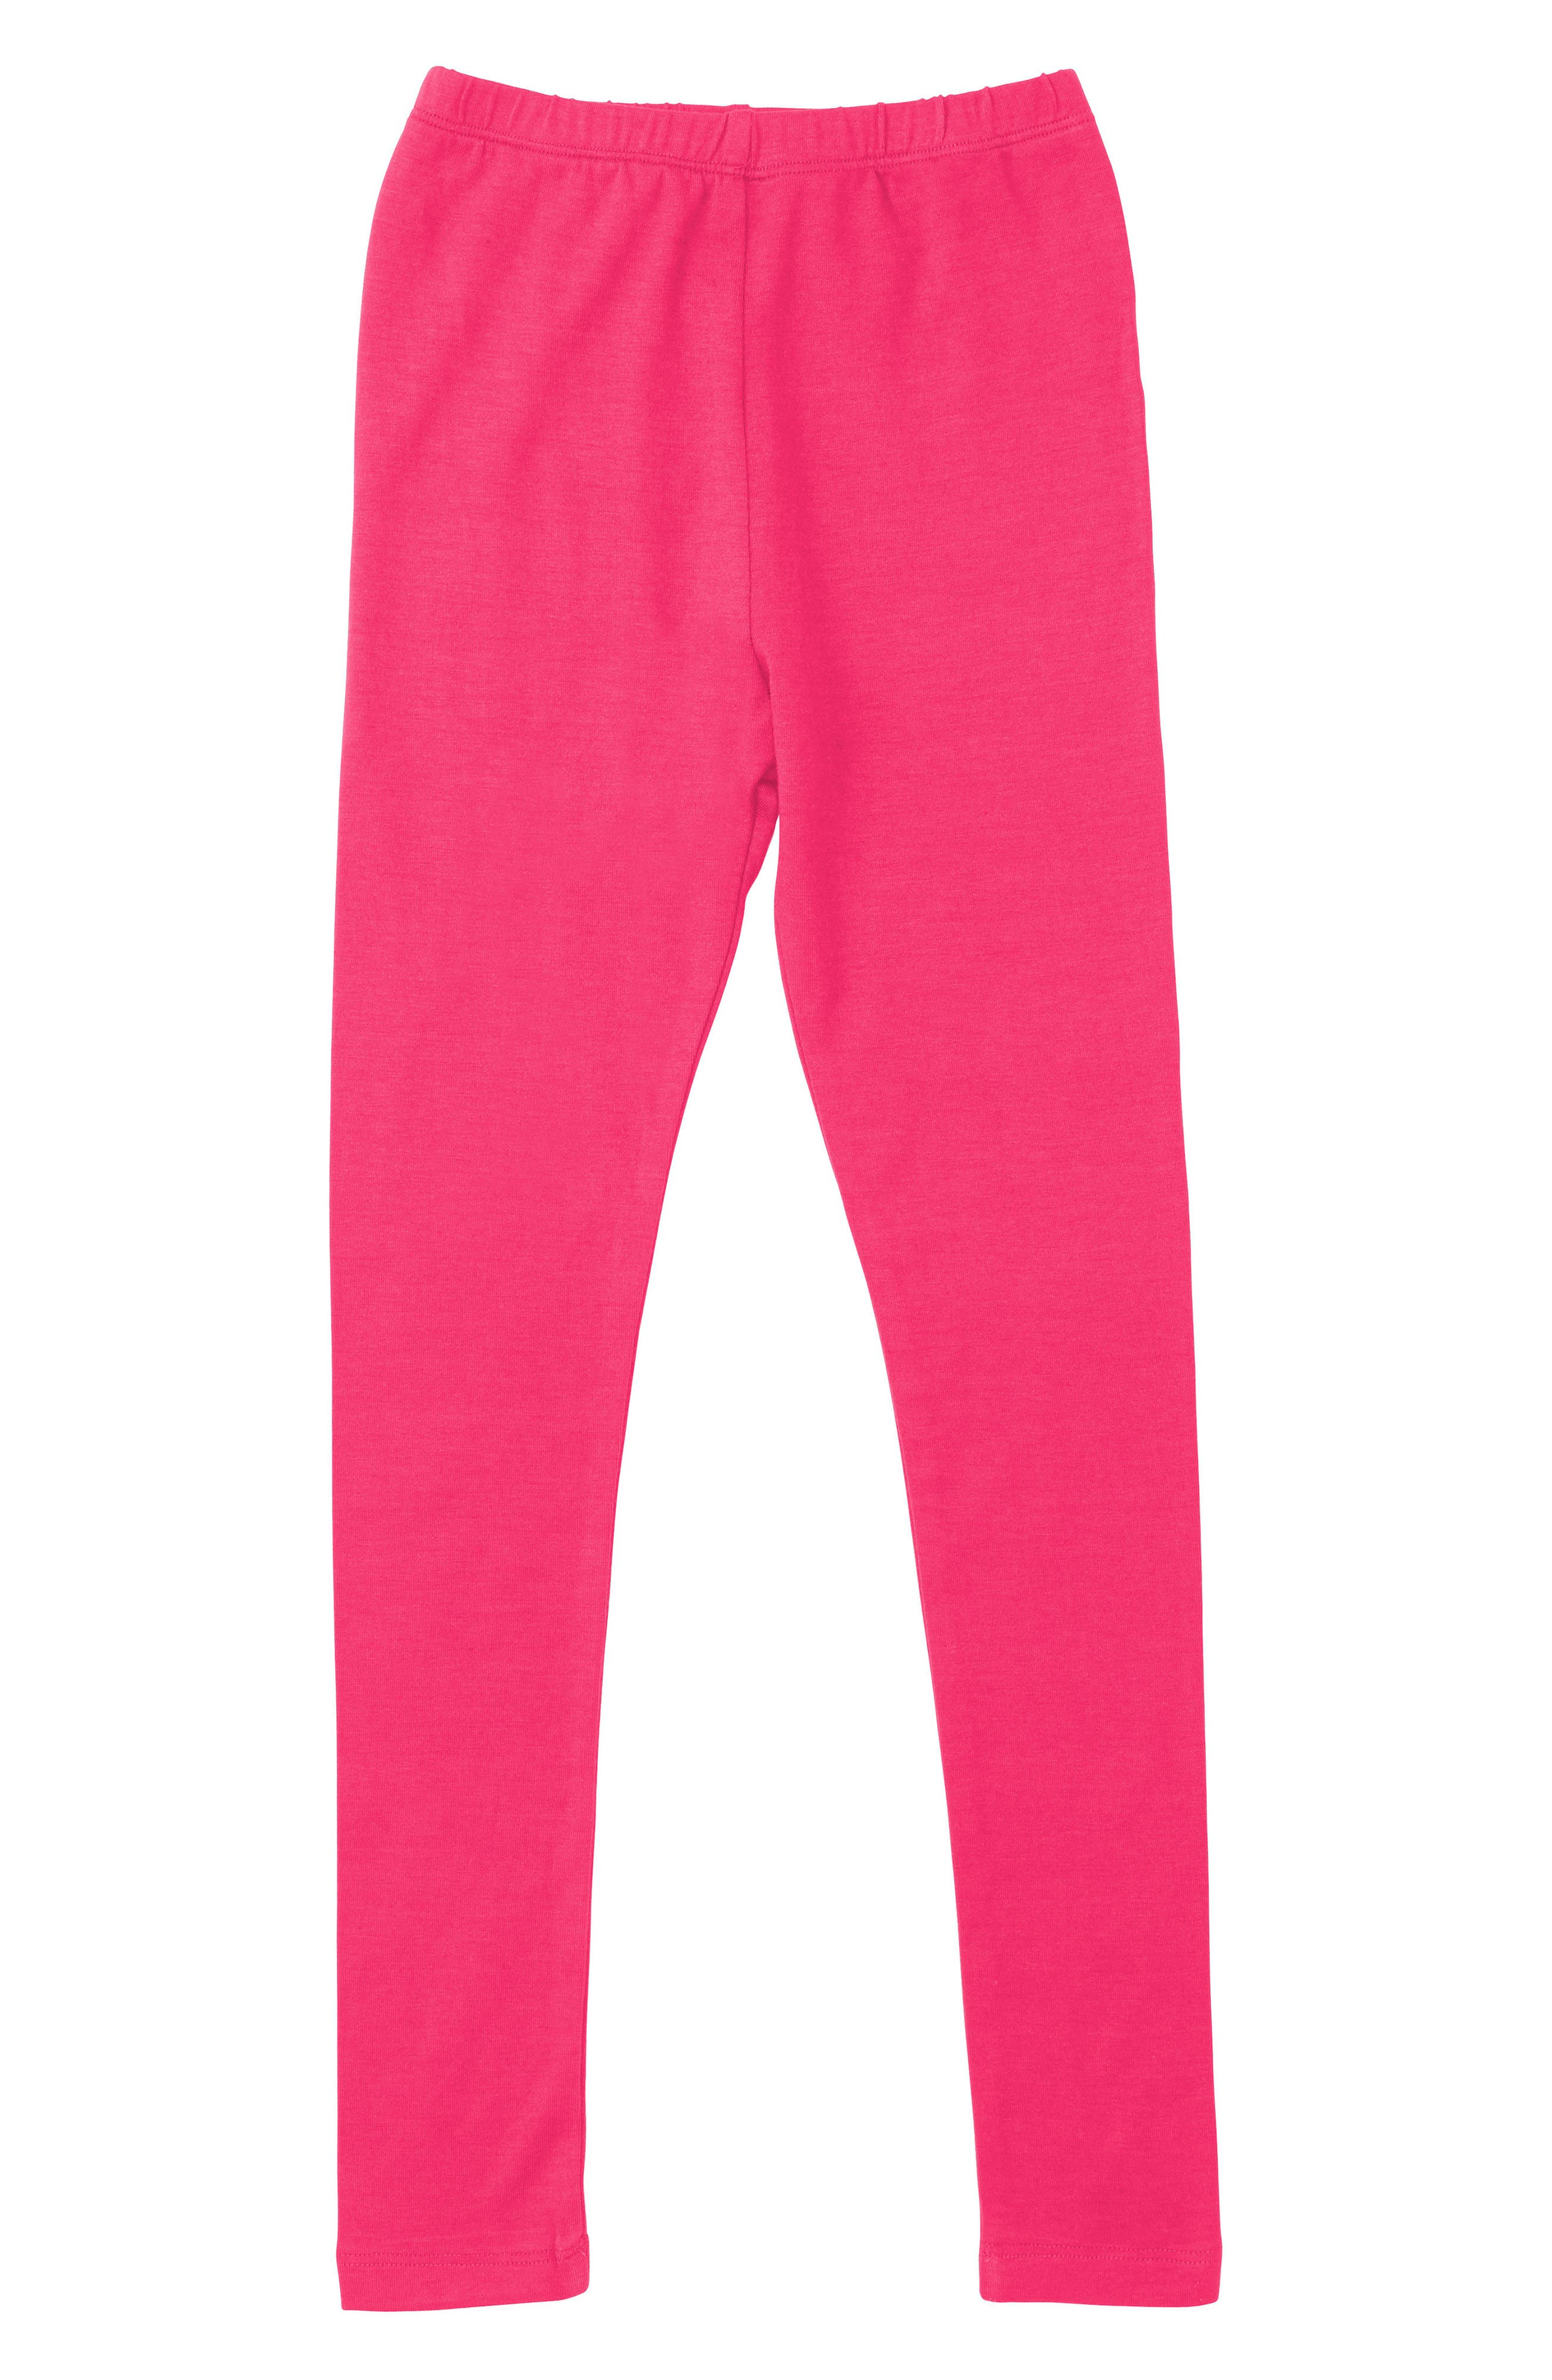 Masalababy Stretch Cotton Leggings (Toddler Girls, Little Girls & Big Girls)